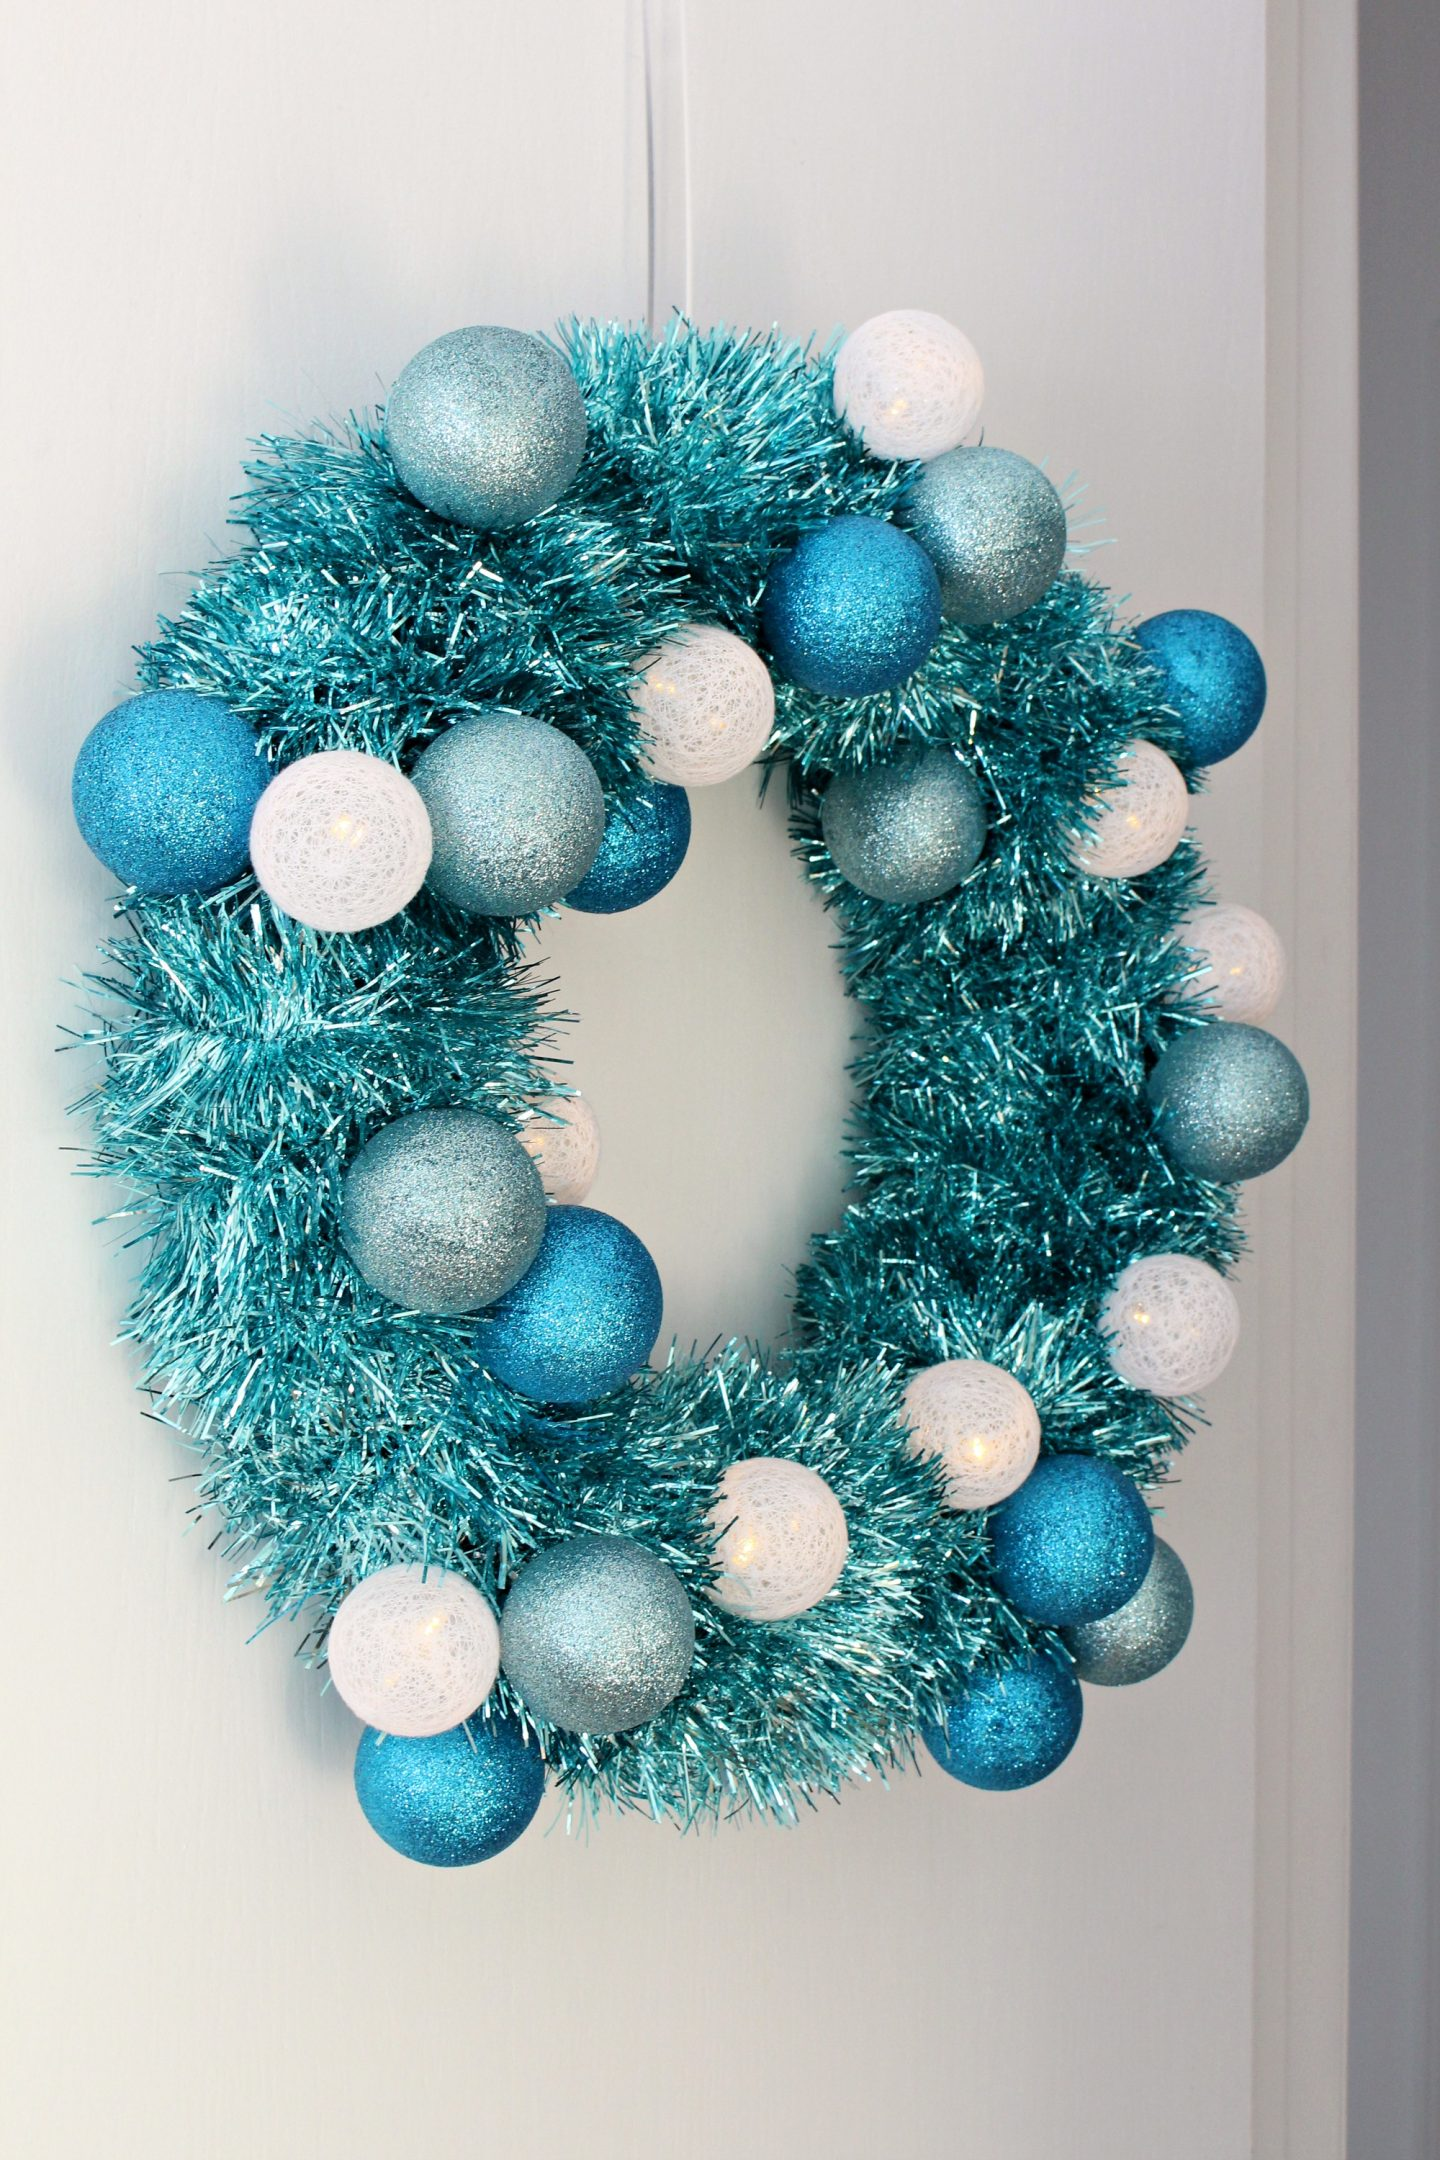 DIY Tinsel Wreath with Retro Vibes #diychristmas #tinsel #tinselwreath #retrochristmas Dollar Store Craft Ideas